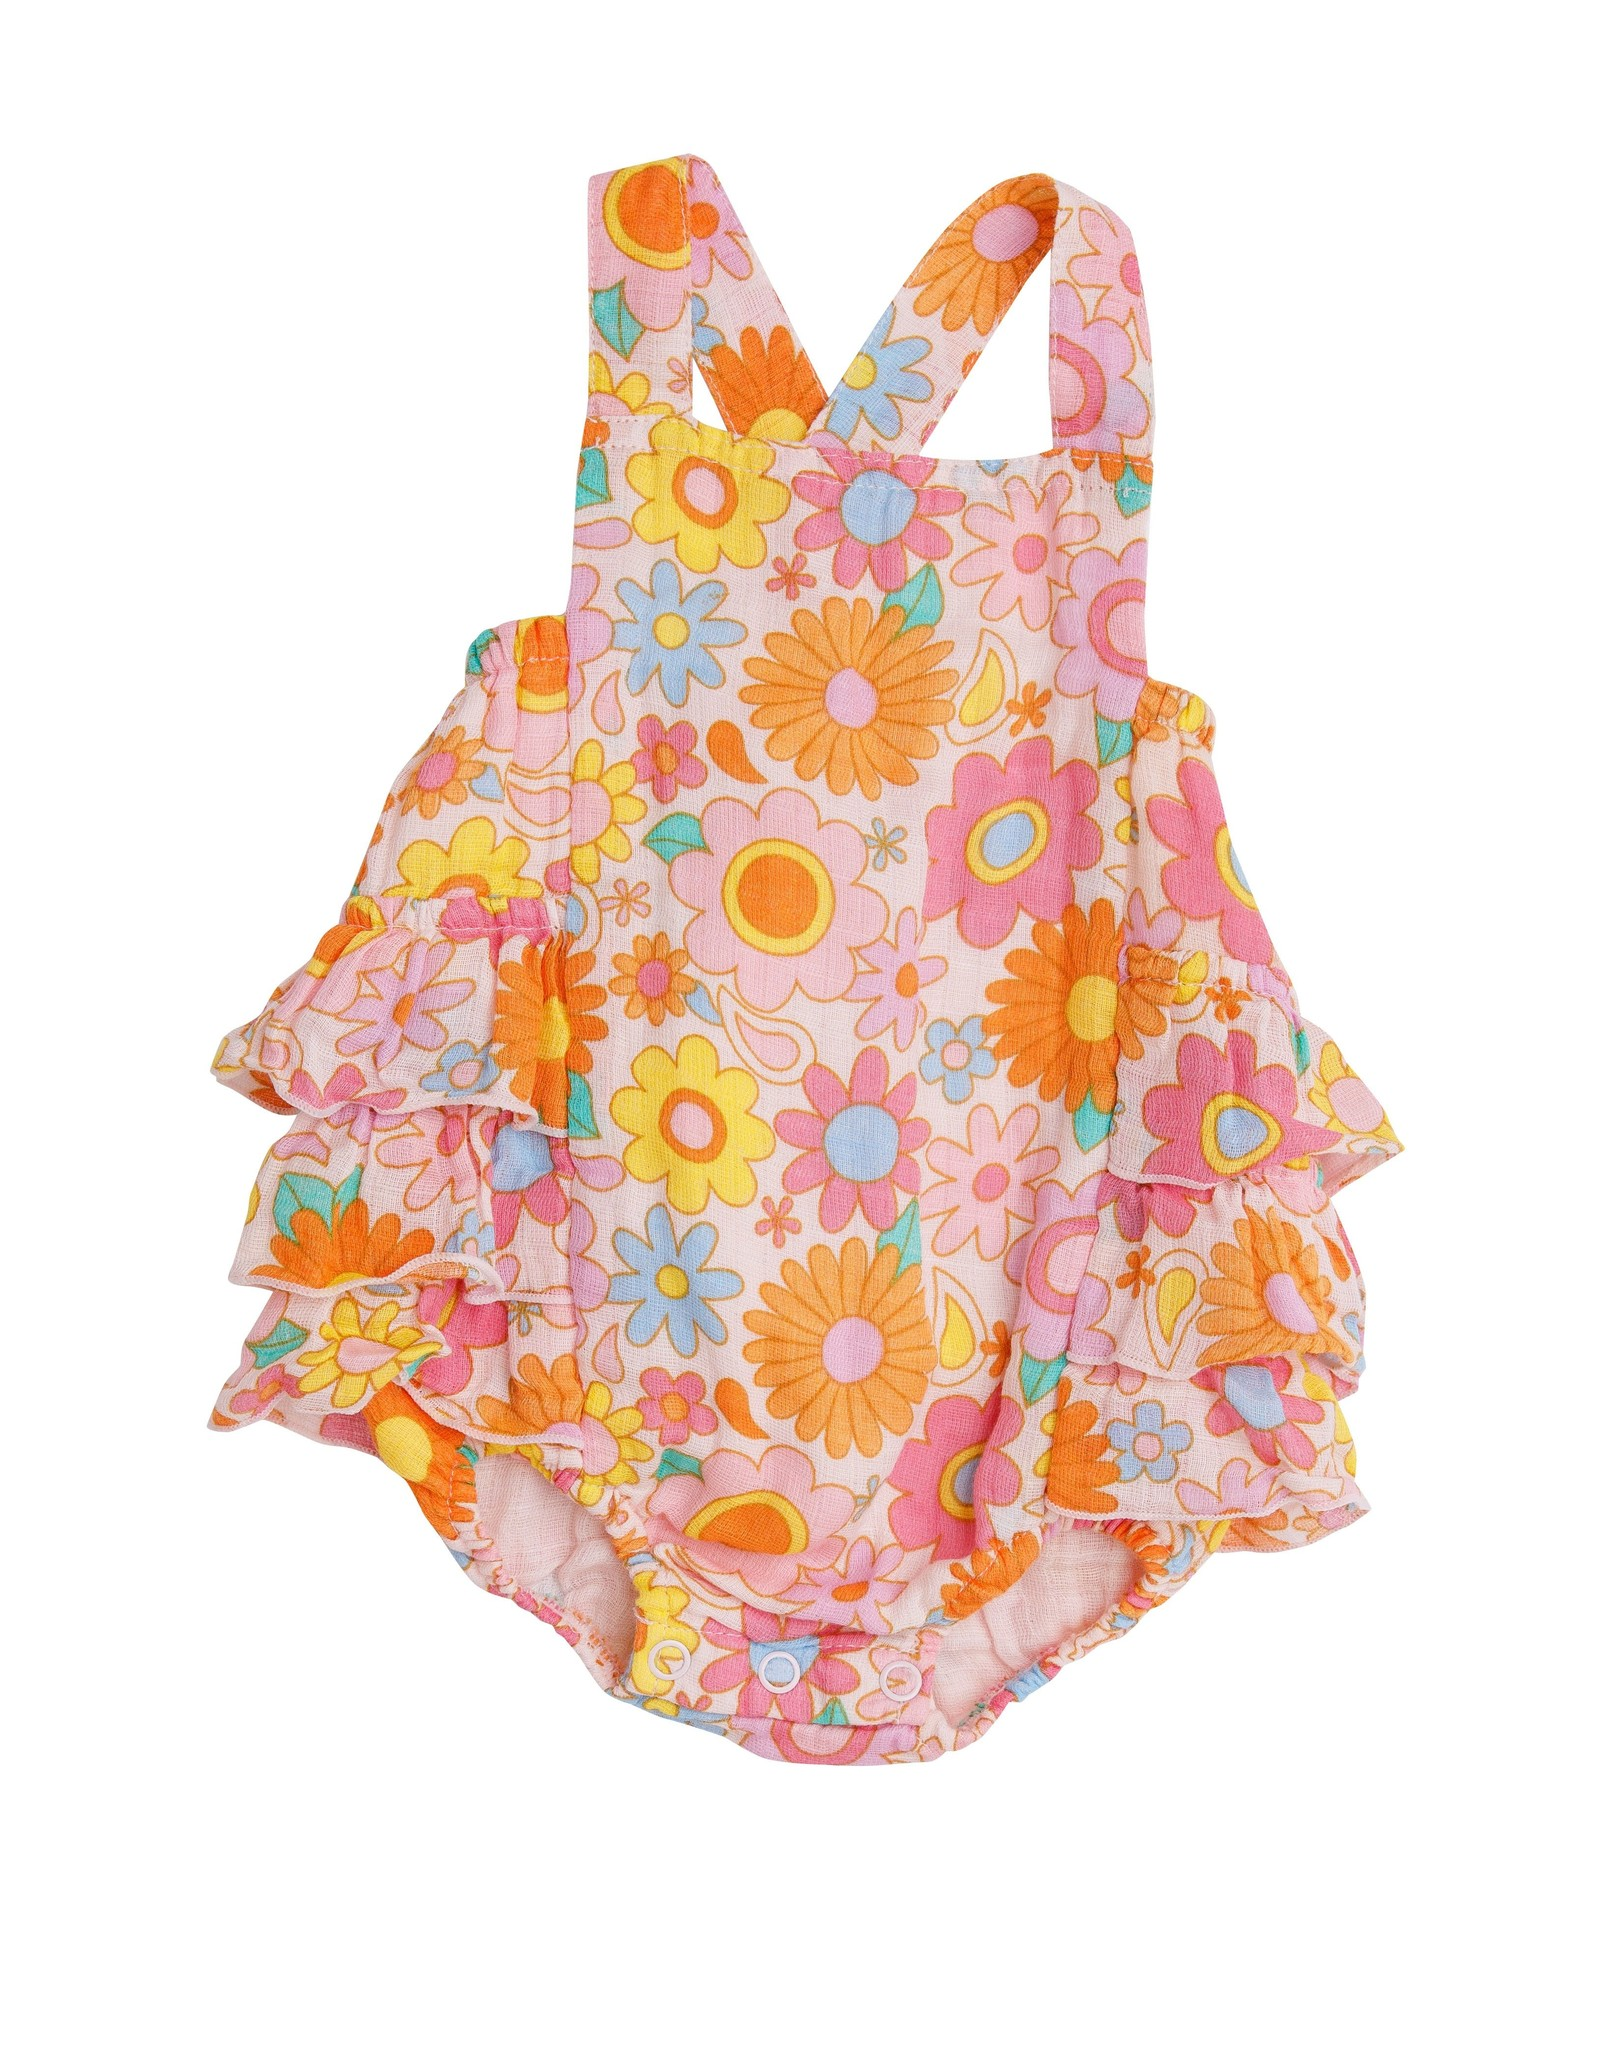 Angel Dear retro daisy ruffle sunsuit